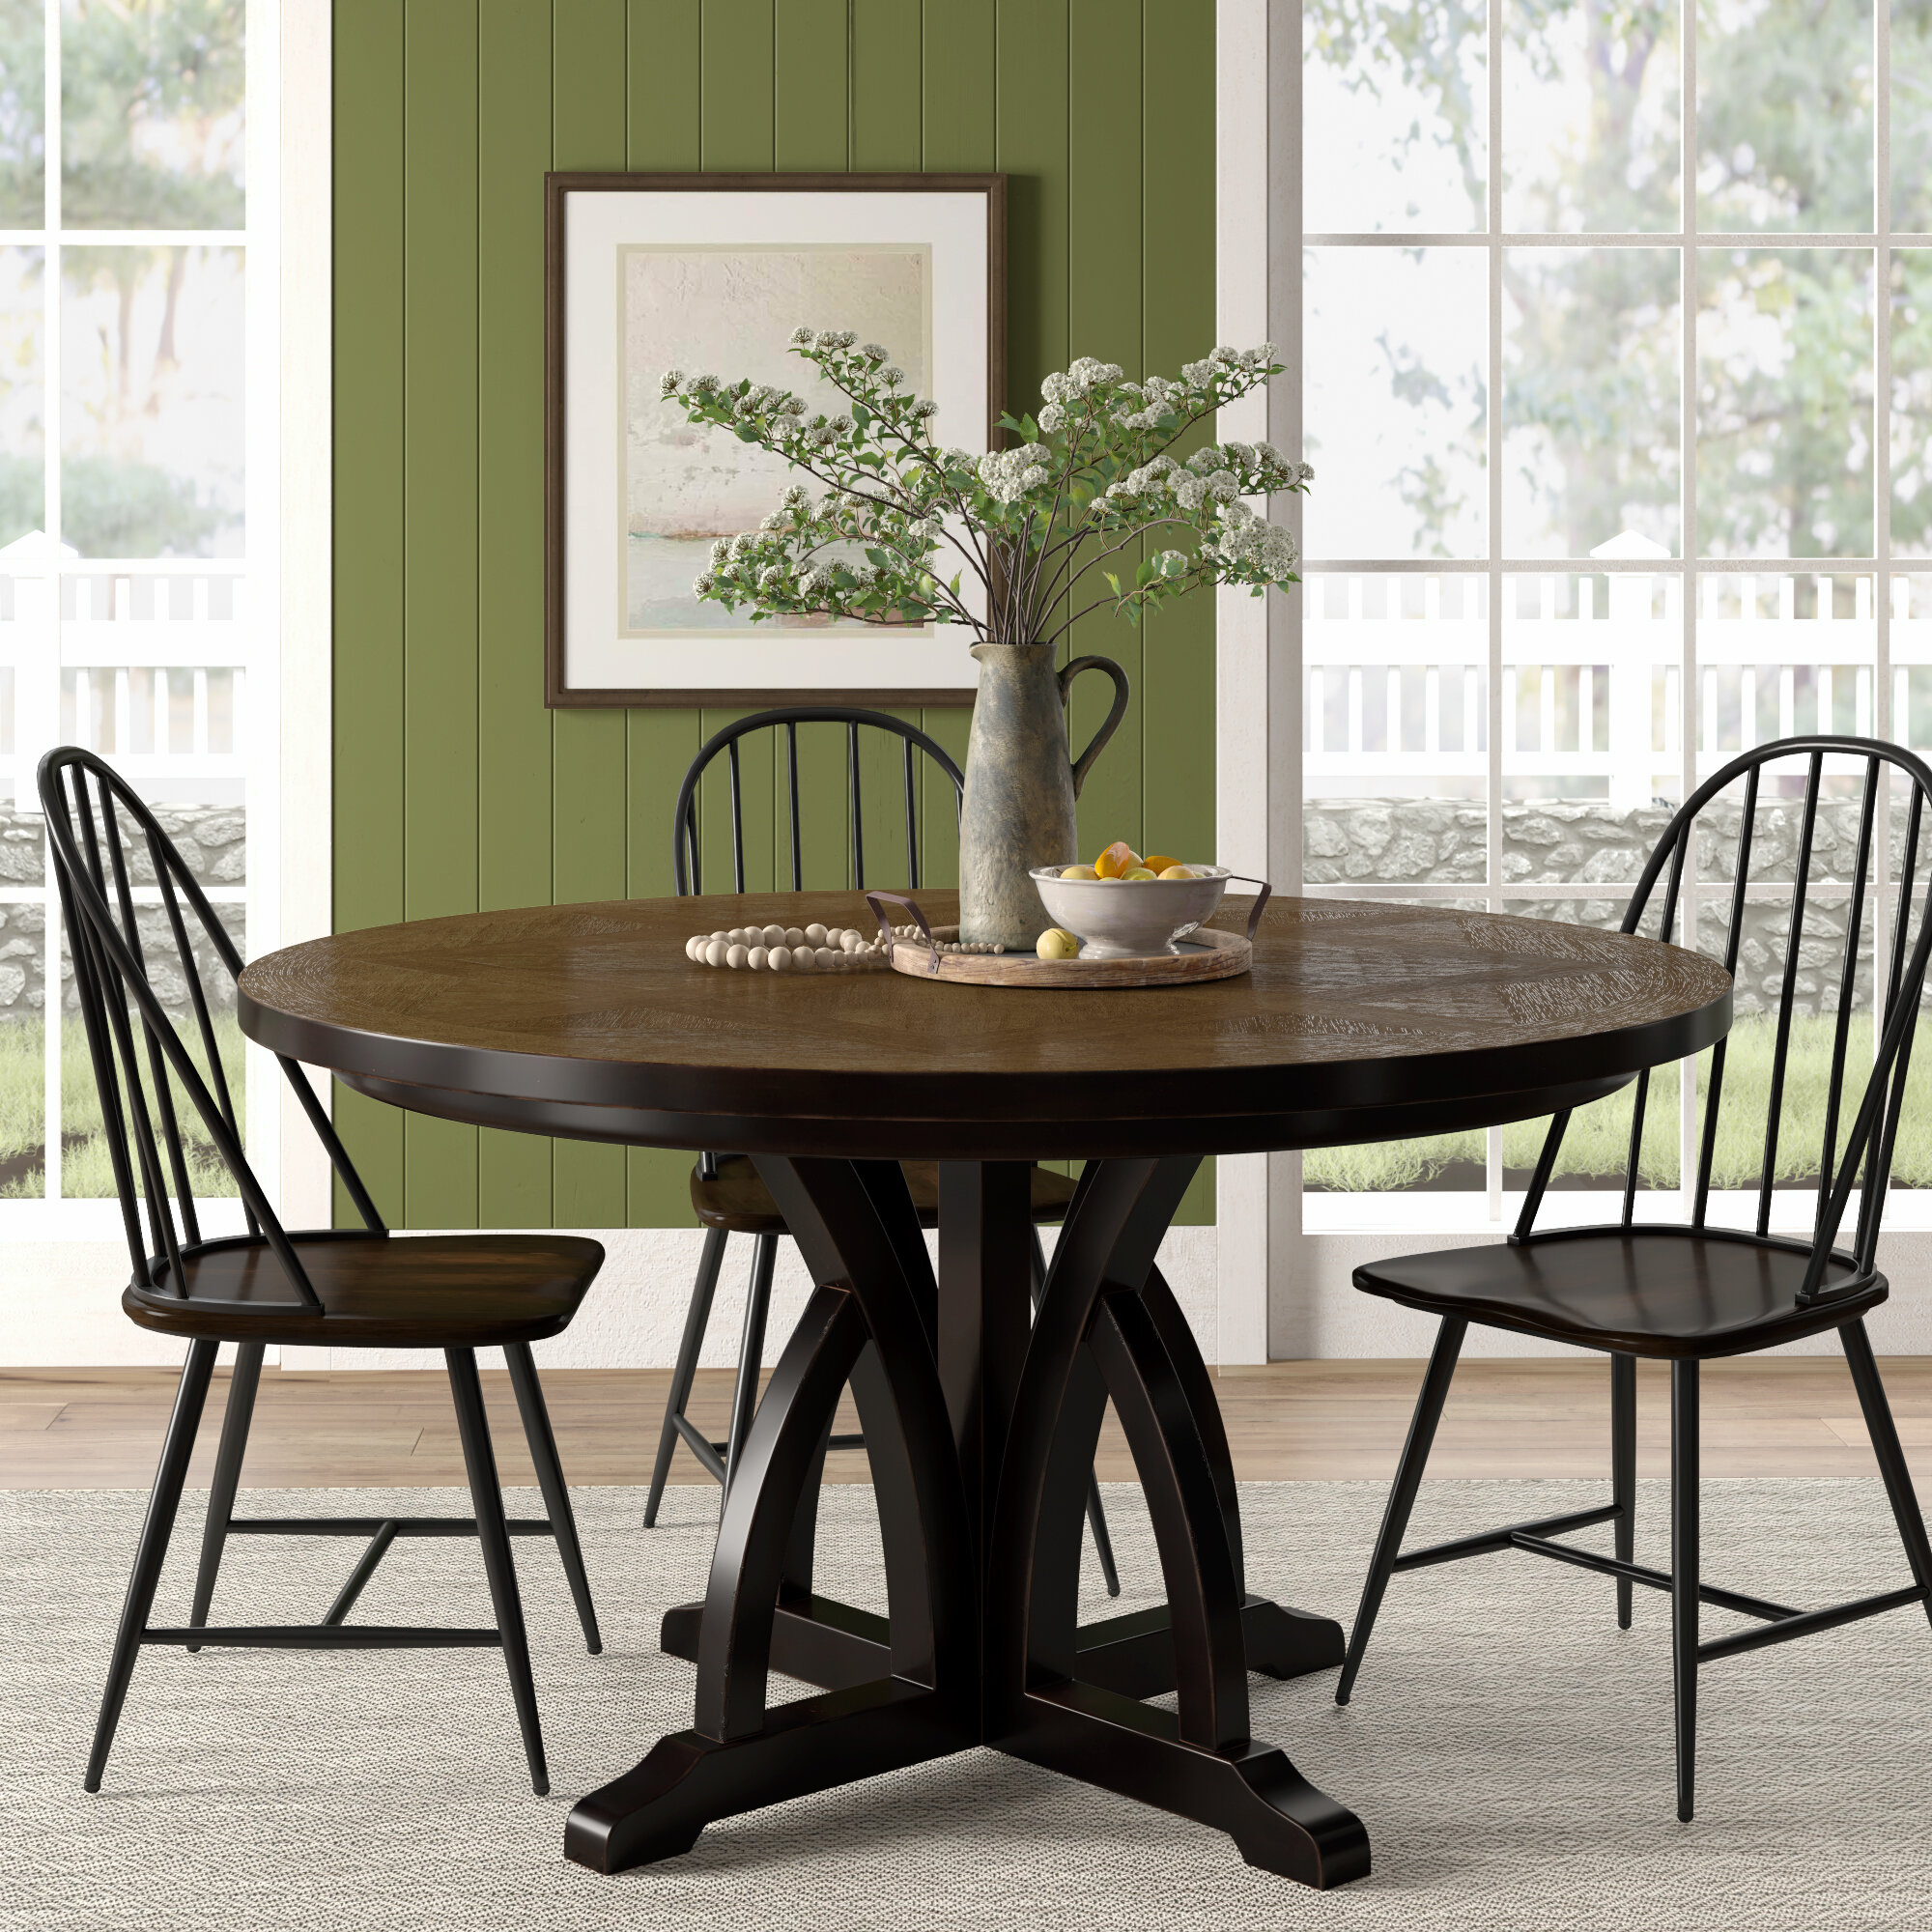 Gracie Oaks Tenley Round Solid Wood Dining Table